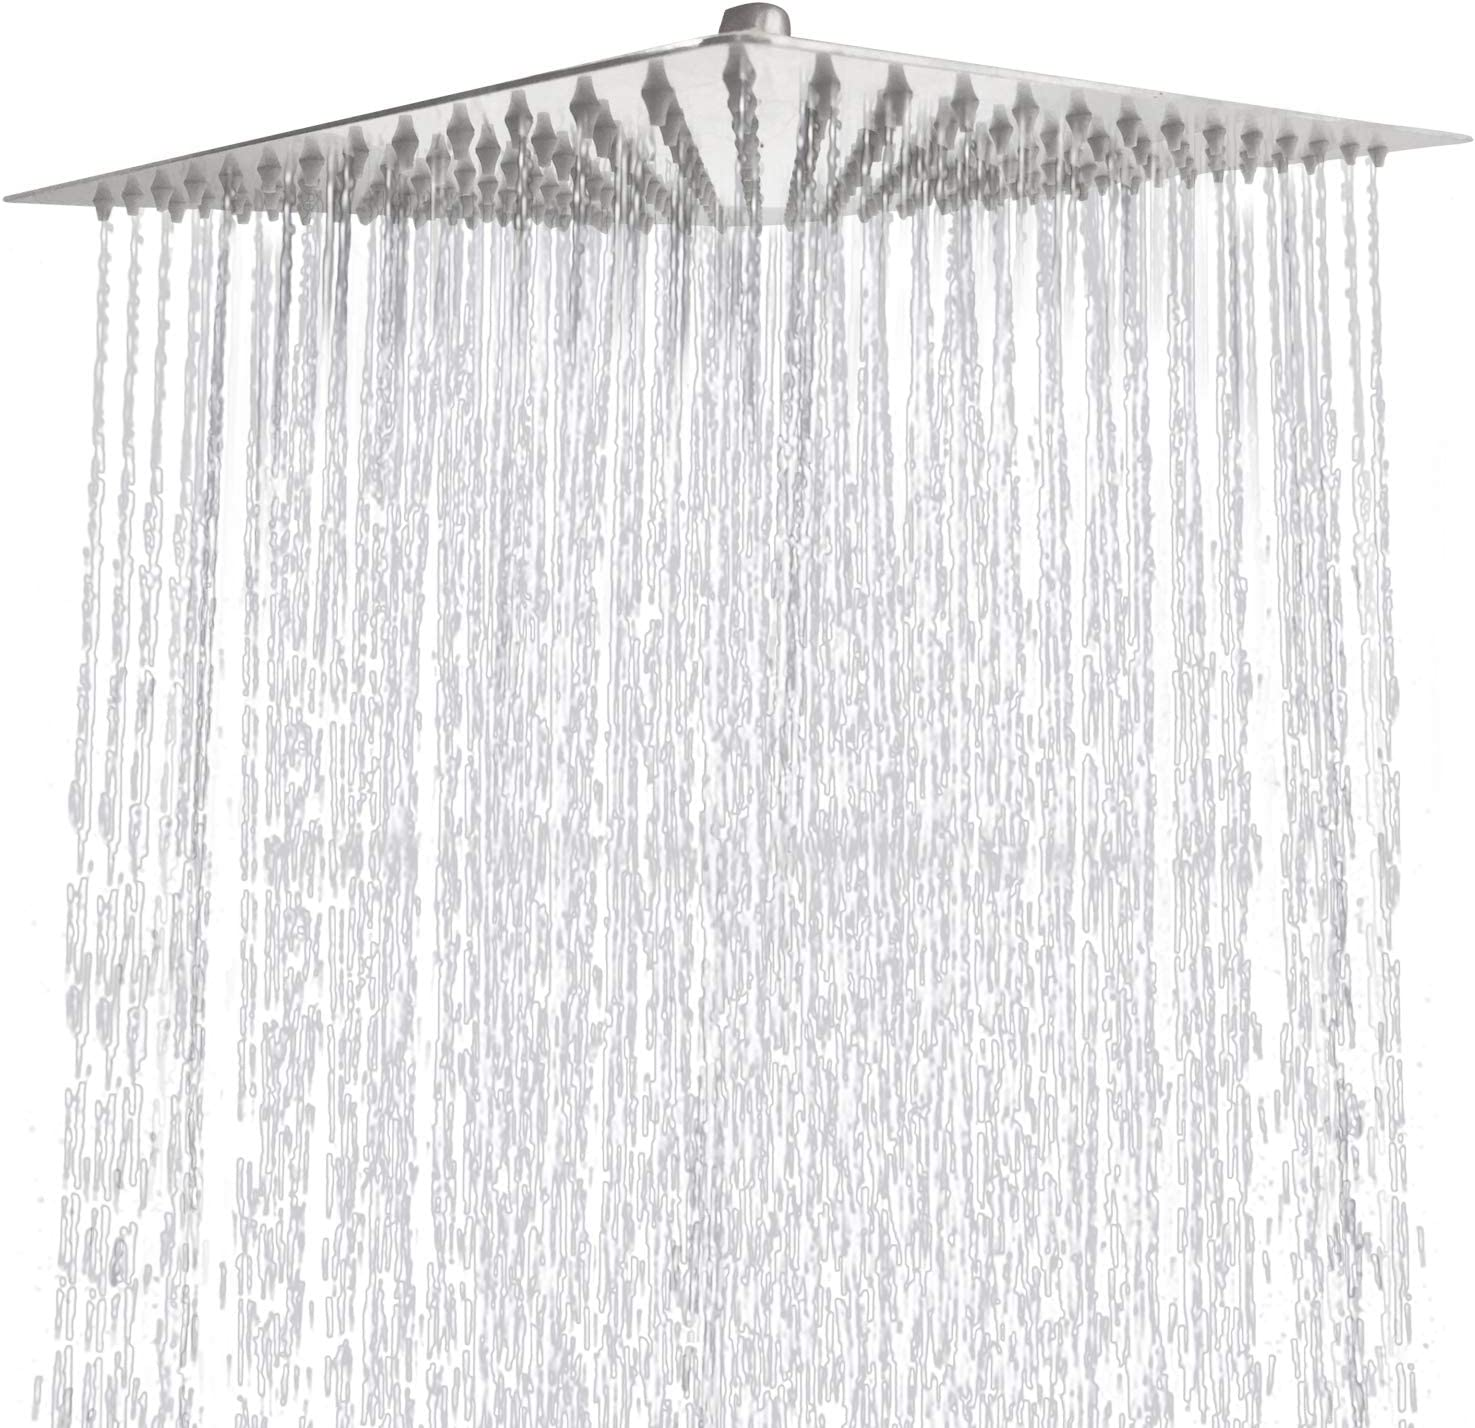 Square Ultra Thin Stainless Steel Brushed Nickel 12 Inch Rain Shower Head